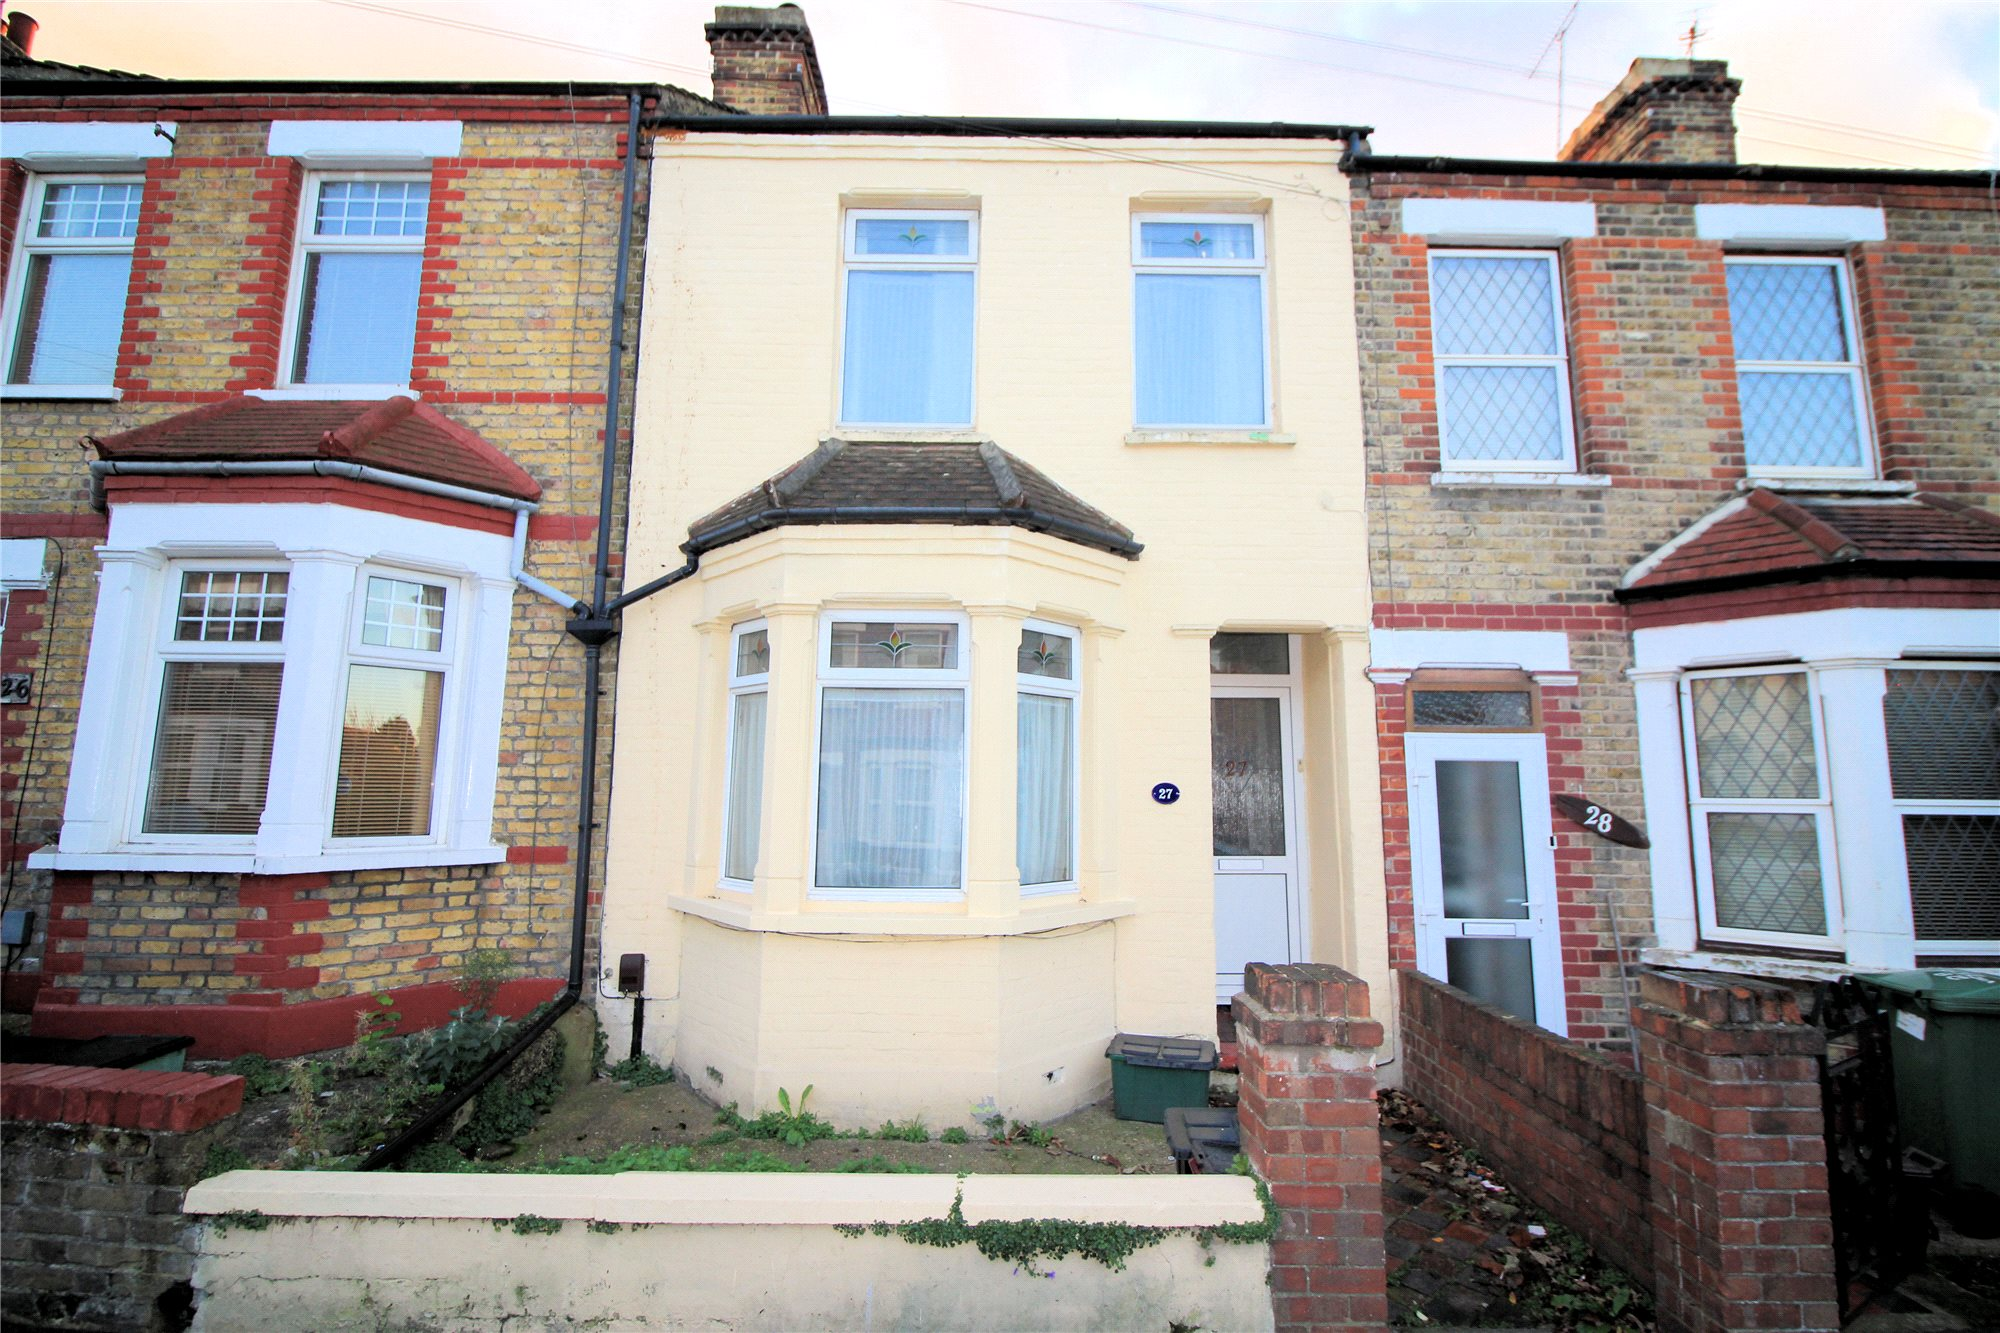 Vickers Road, Erith, Kent, DA8